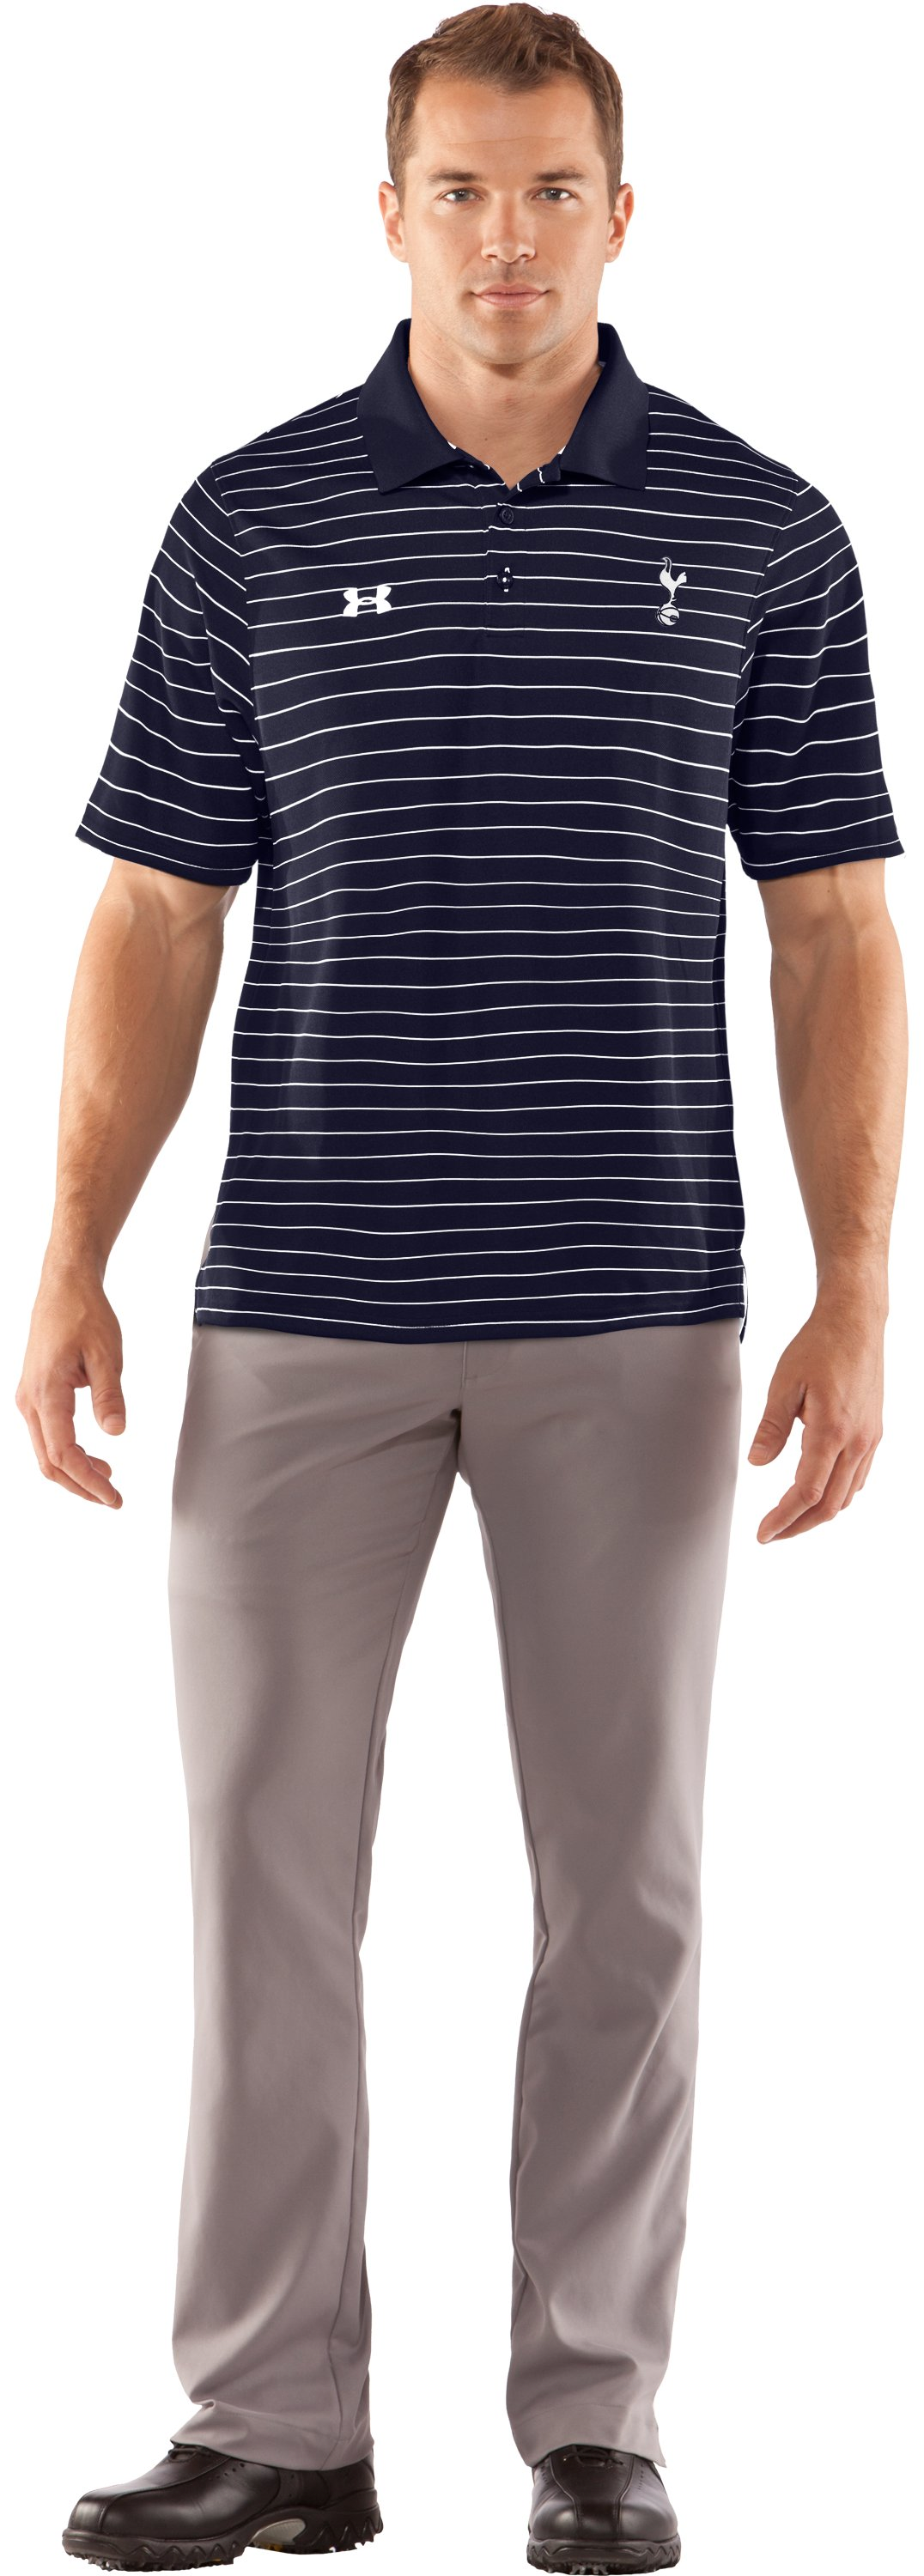 Men's Tottenham Hotspur Draw Stripe Polo, Midnight Navy